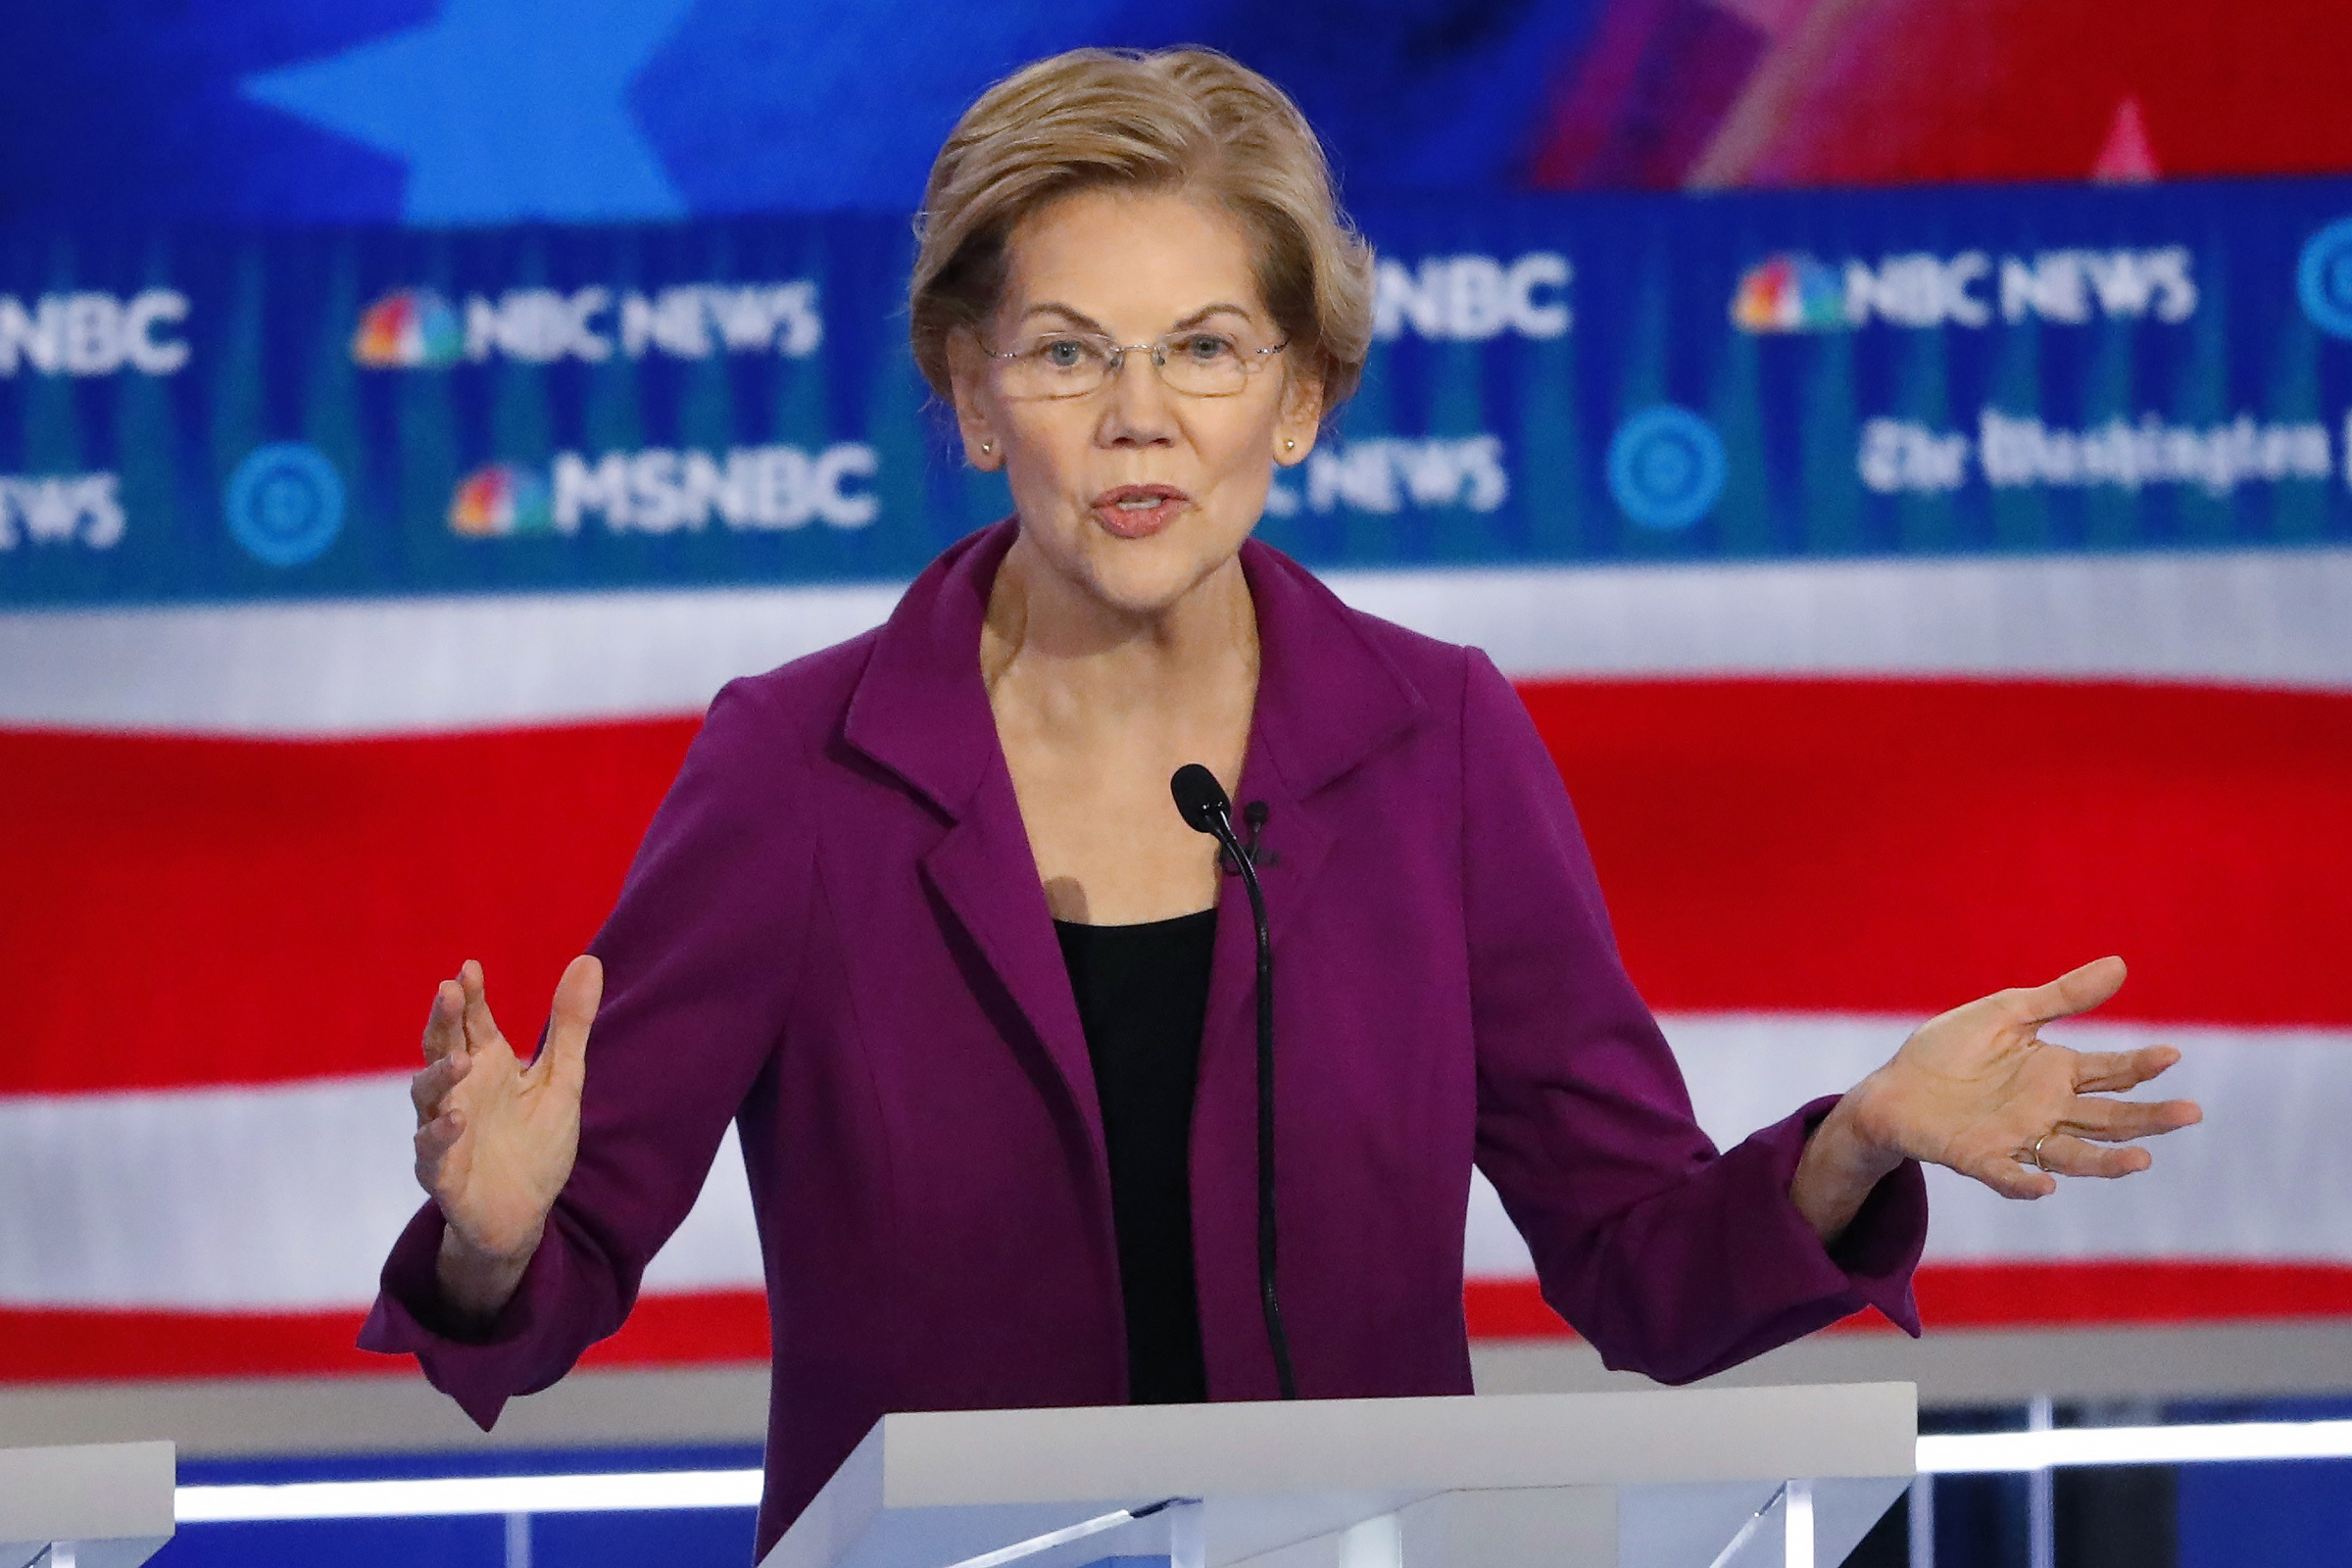 Democratic presidential candidate Sen. Elizabeth Warren, D-Mass., speaks during a Democratic presidential primary debate in Atlanta in Nov. 20, 2019.